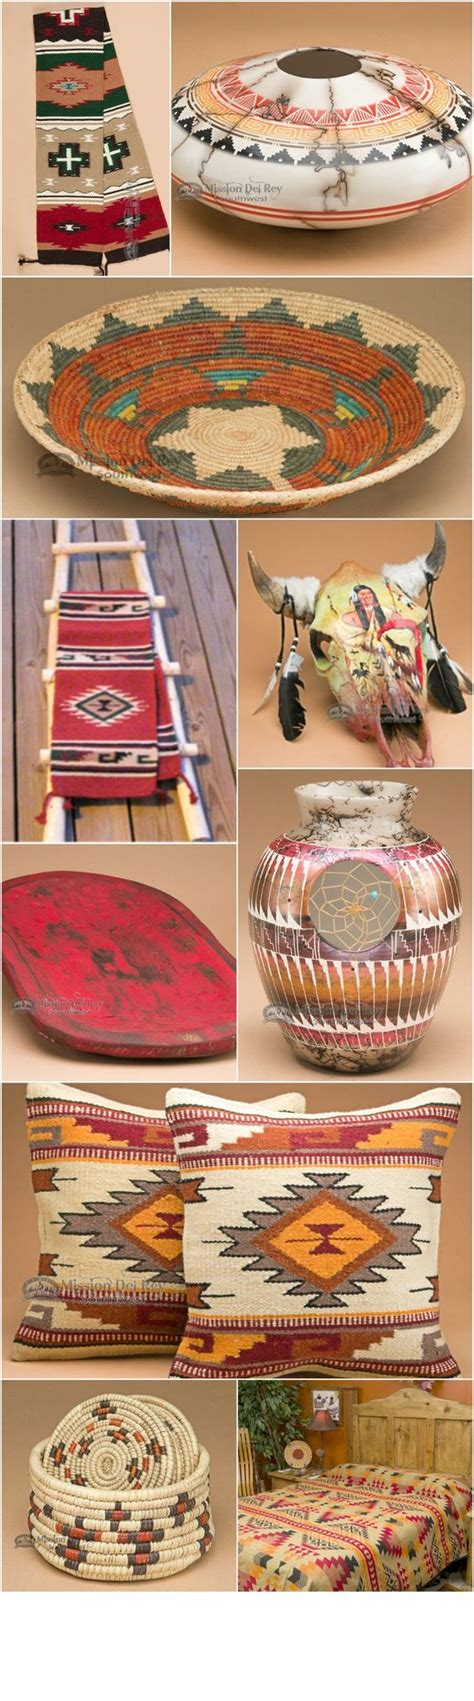 southwest home decor catalogs southwestern style decor southwest decor and styles of homes on pinterest